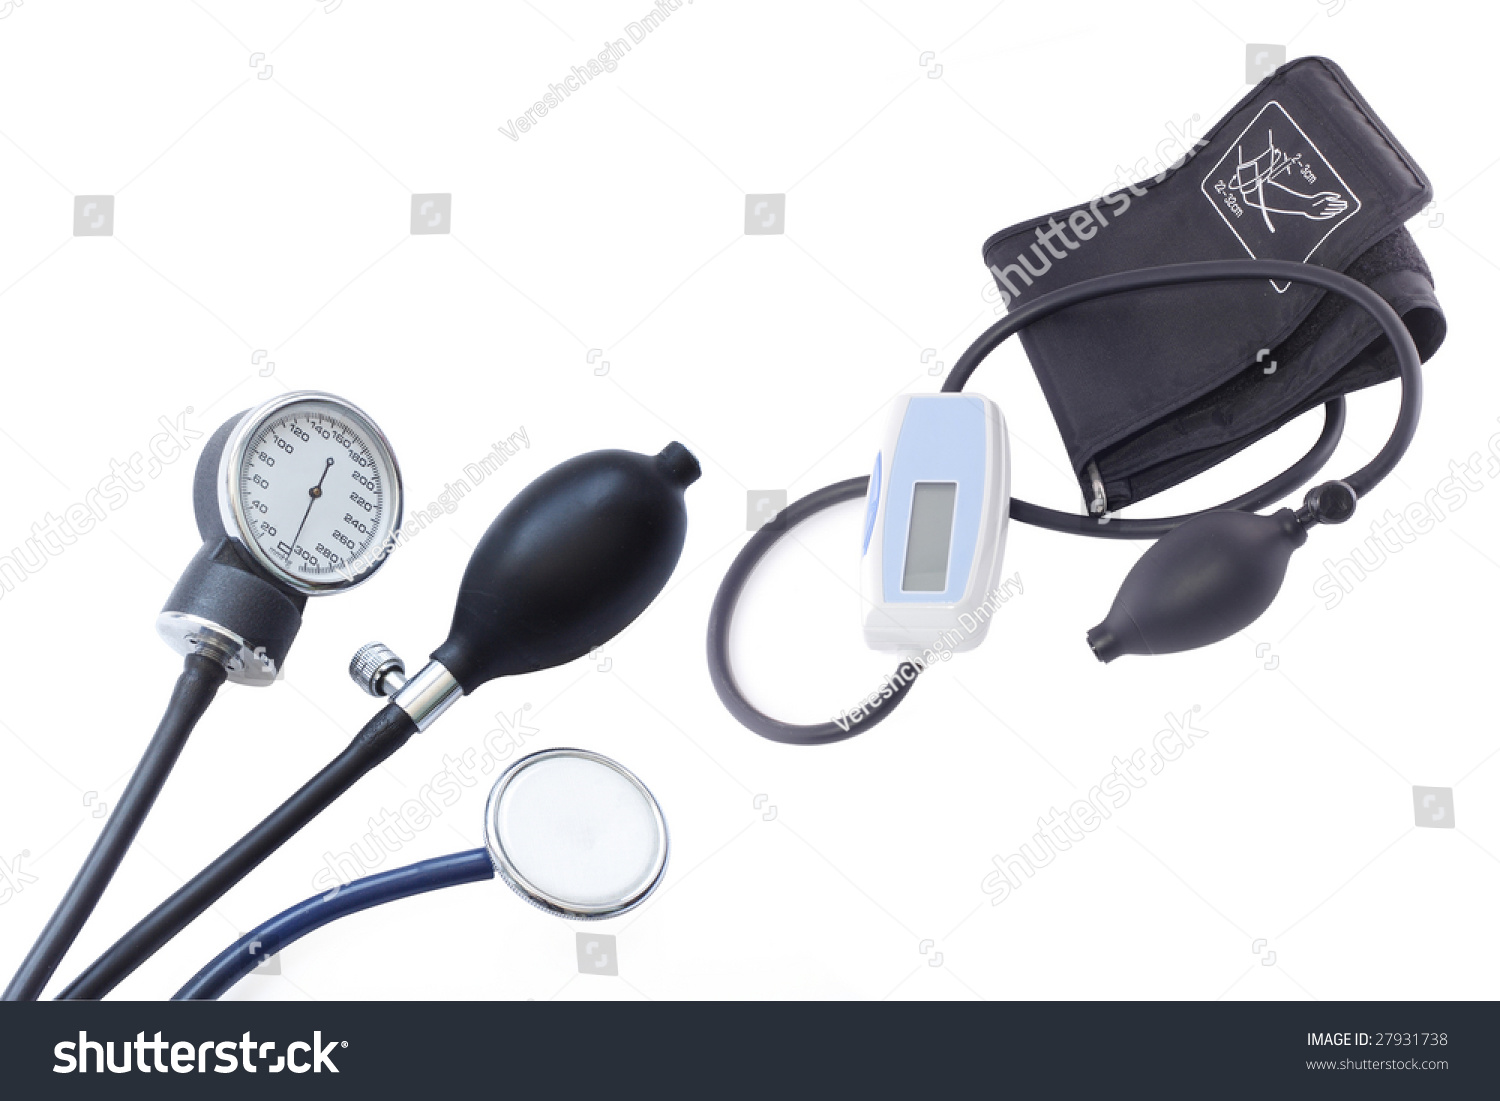 Pressure Measuring Instruments : Different blood pressure measuring instruments under the